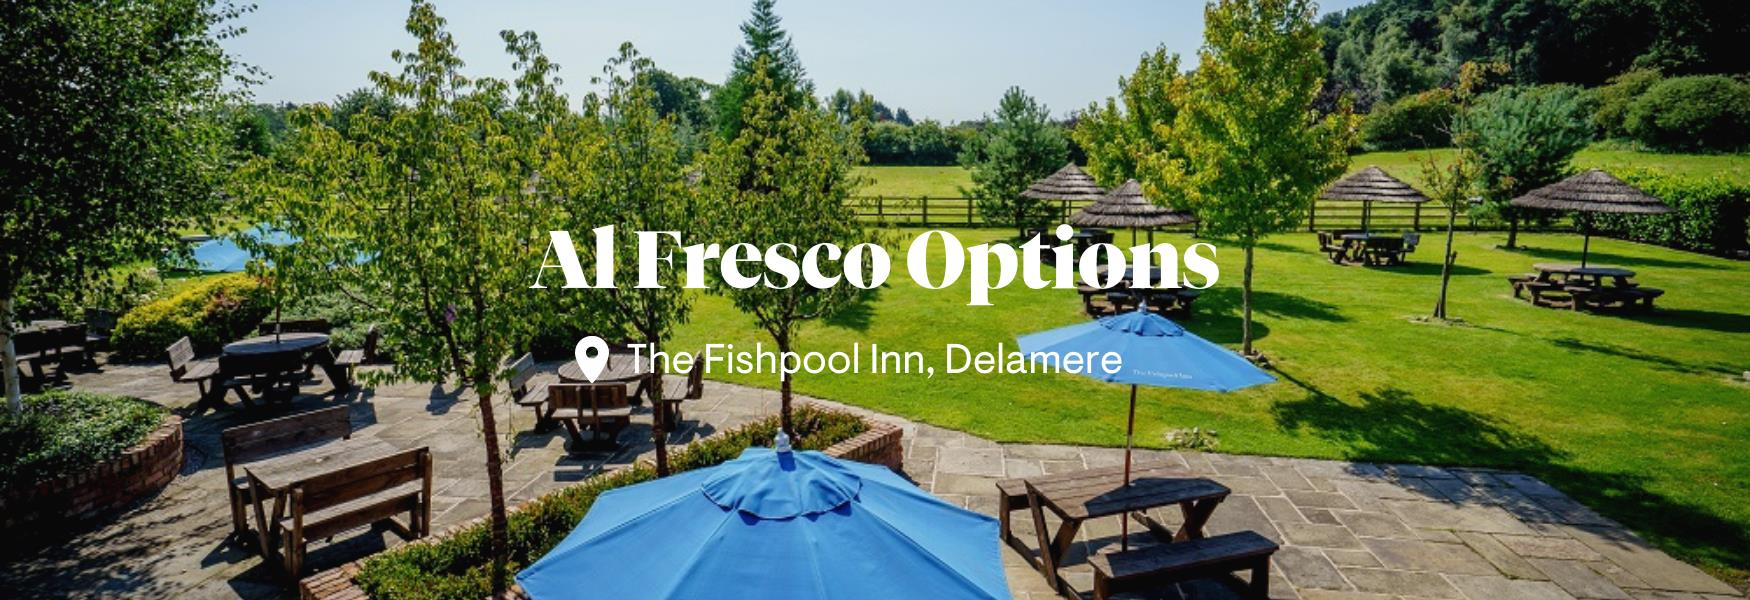 Al Fresco Options in Chester and Cheshire